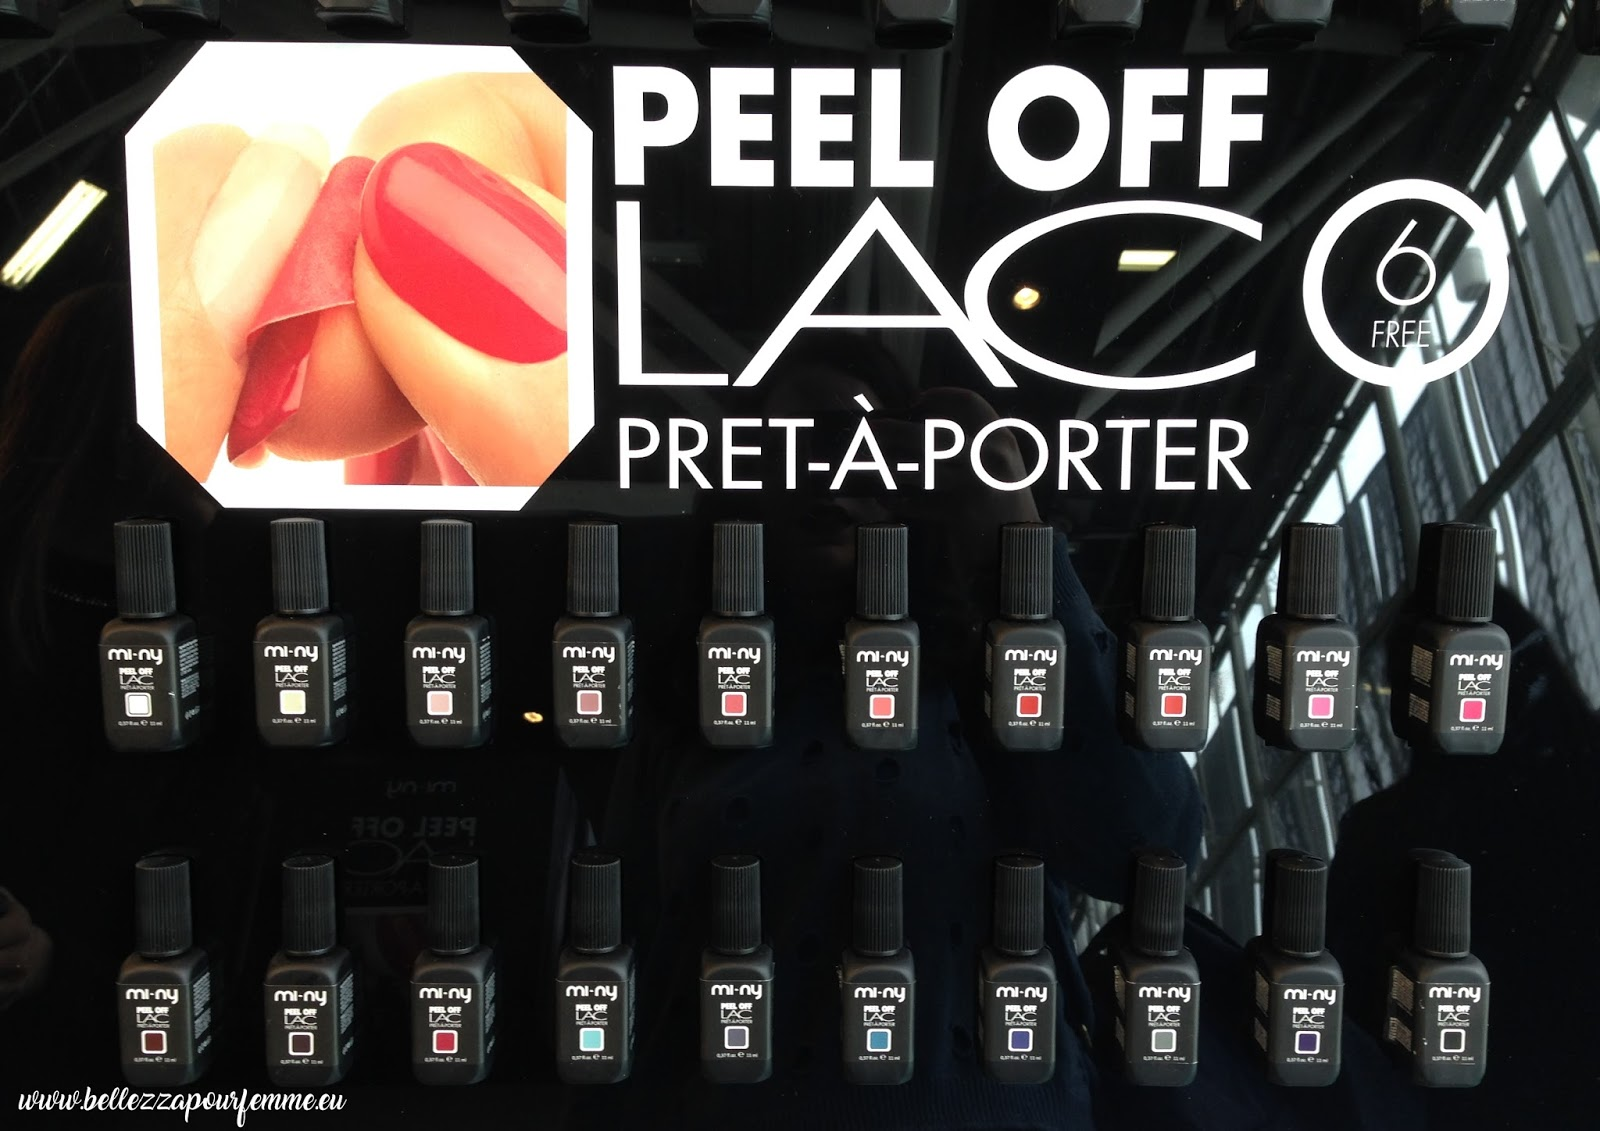 PEEL OFF LAC ONE STEP PRET A PORTER